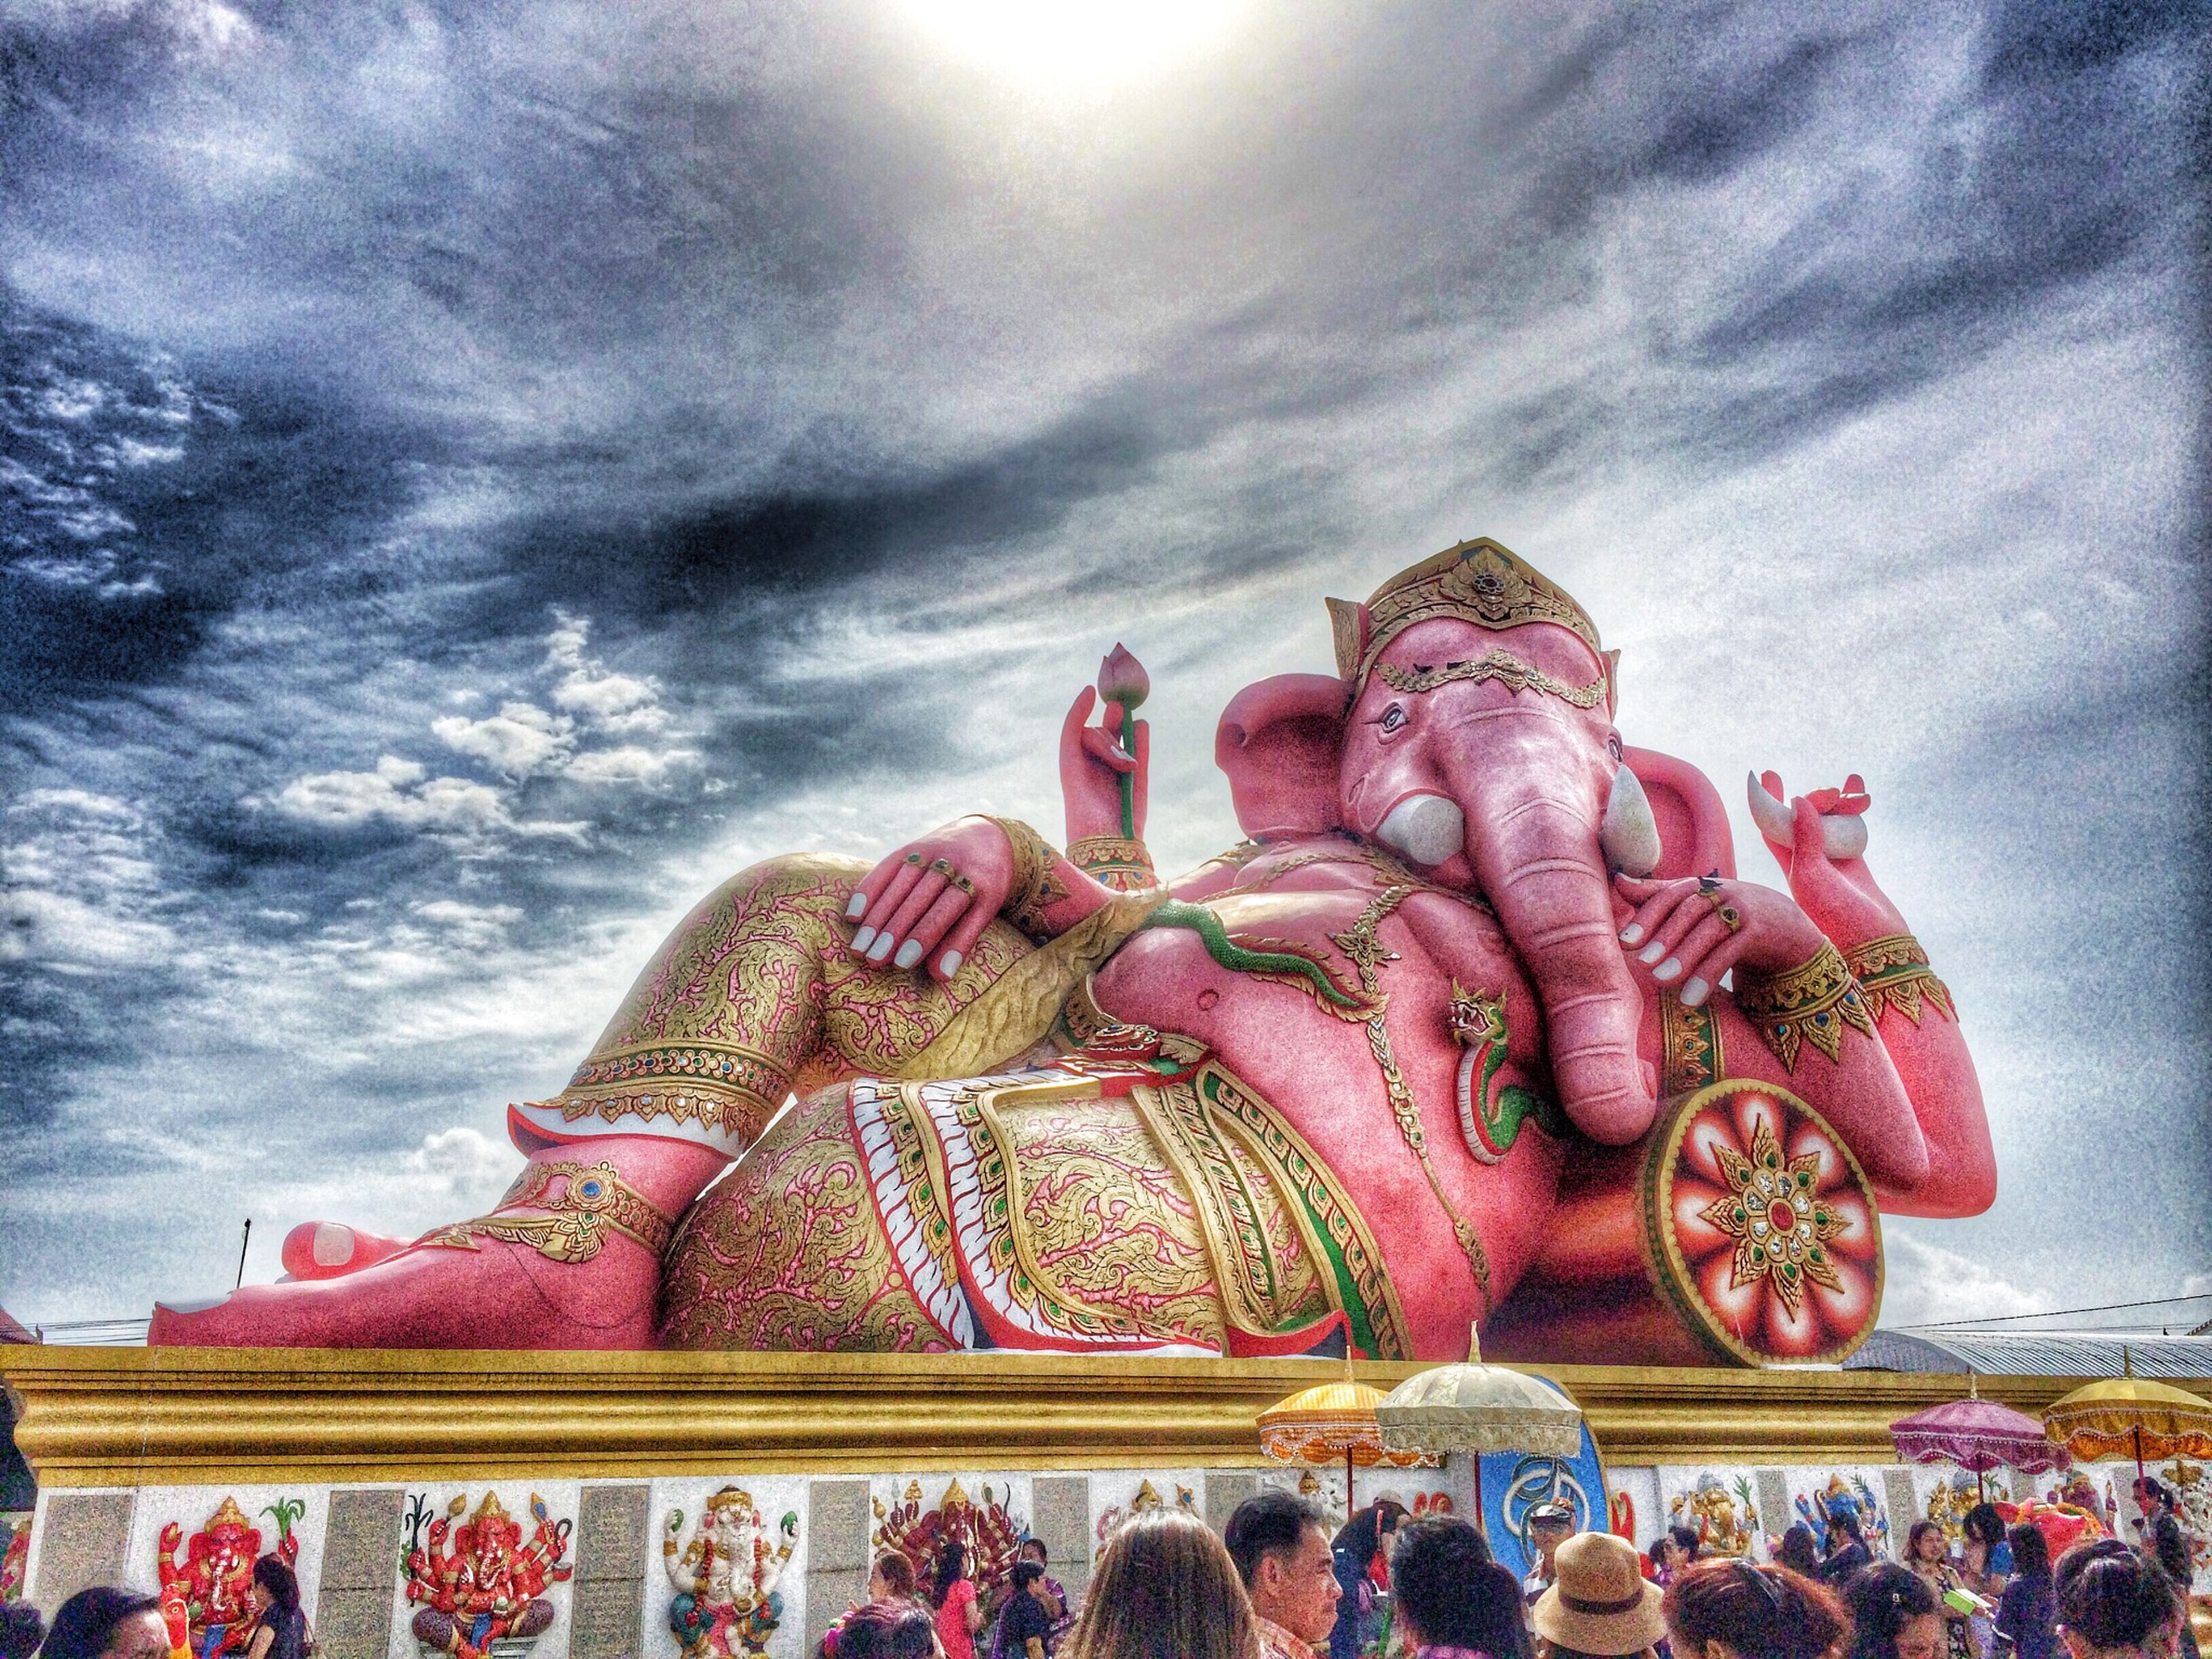 sky, low angle view, religion, cloud - sky, art and craft, art, spirituality, human representation, creativity, temple - building, cultures, place of worship, tradition, statue, cloudy, sculpture, built structure, cloud